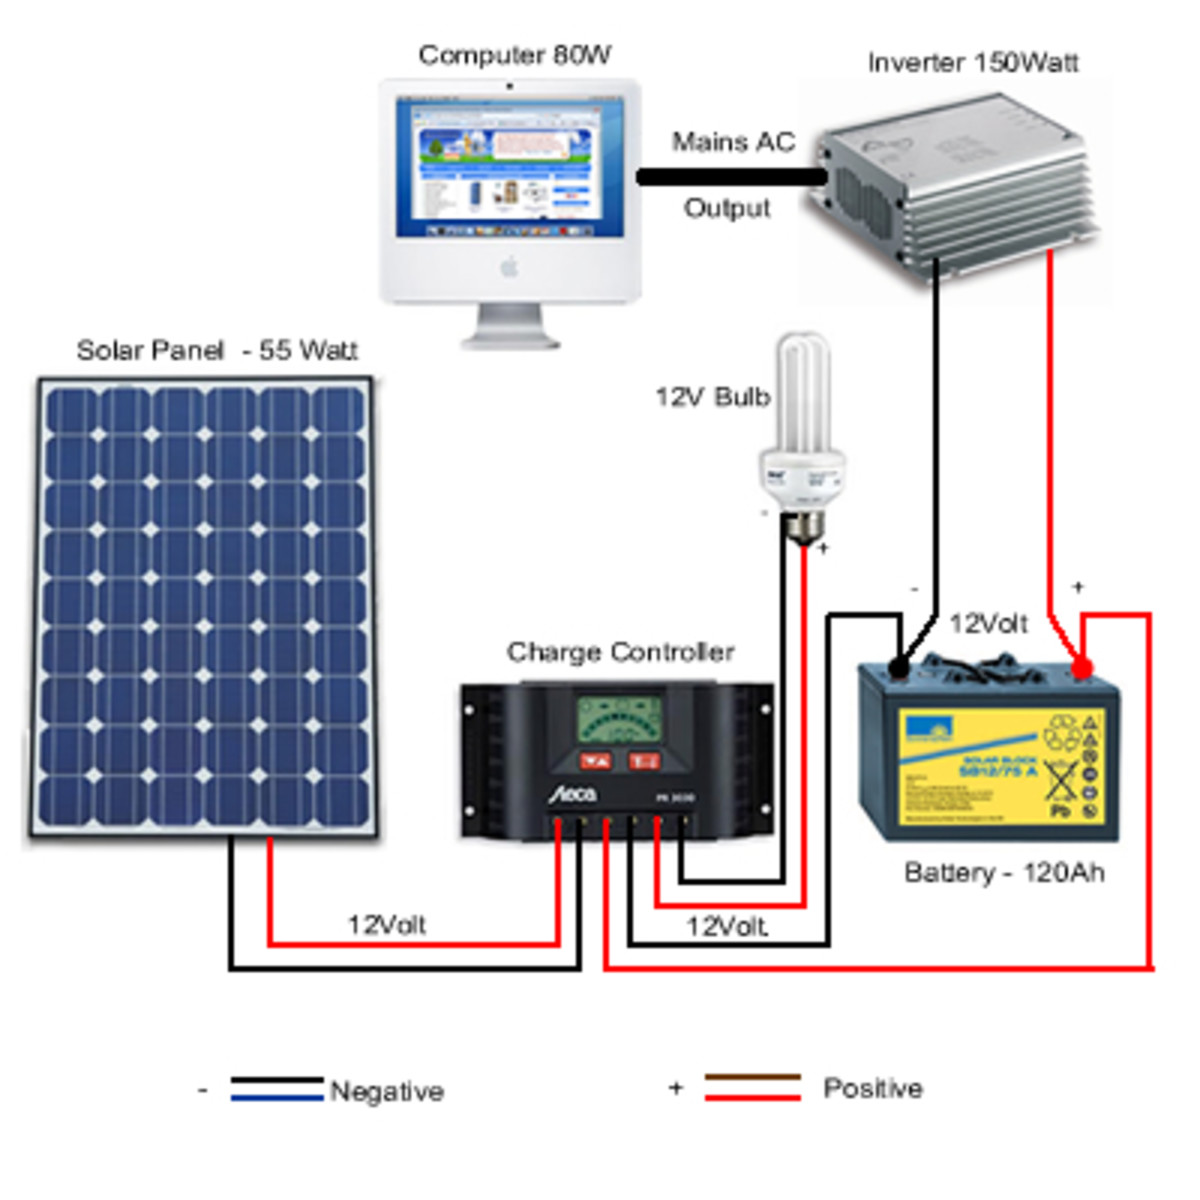 Simple Photovoltaic (Solar) Power System Setup for the Remote Home